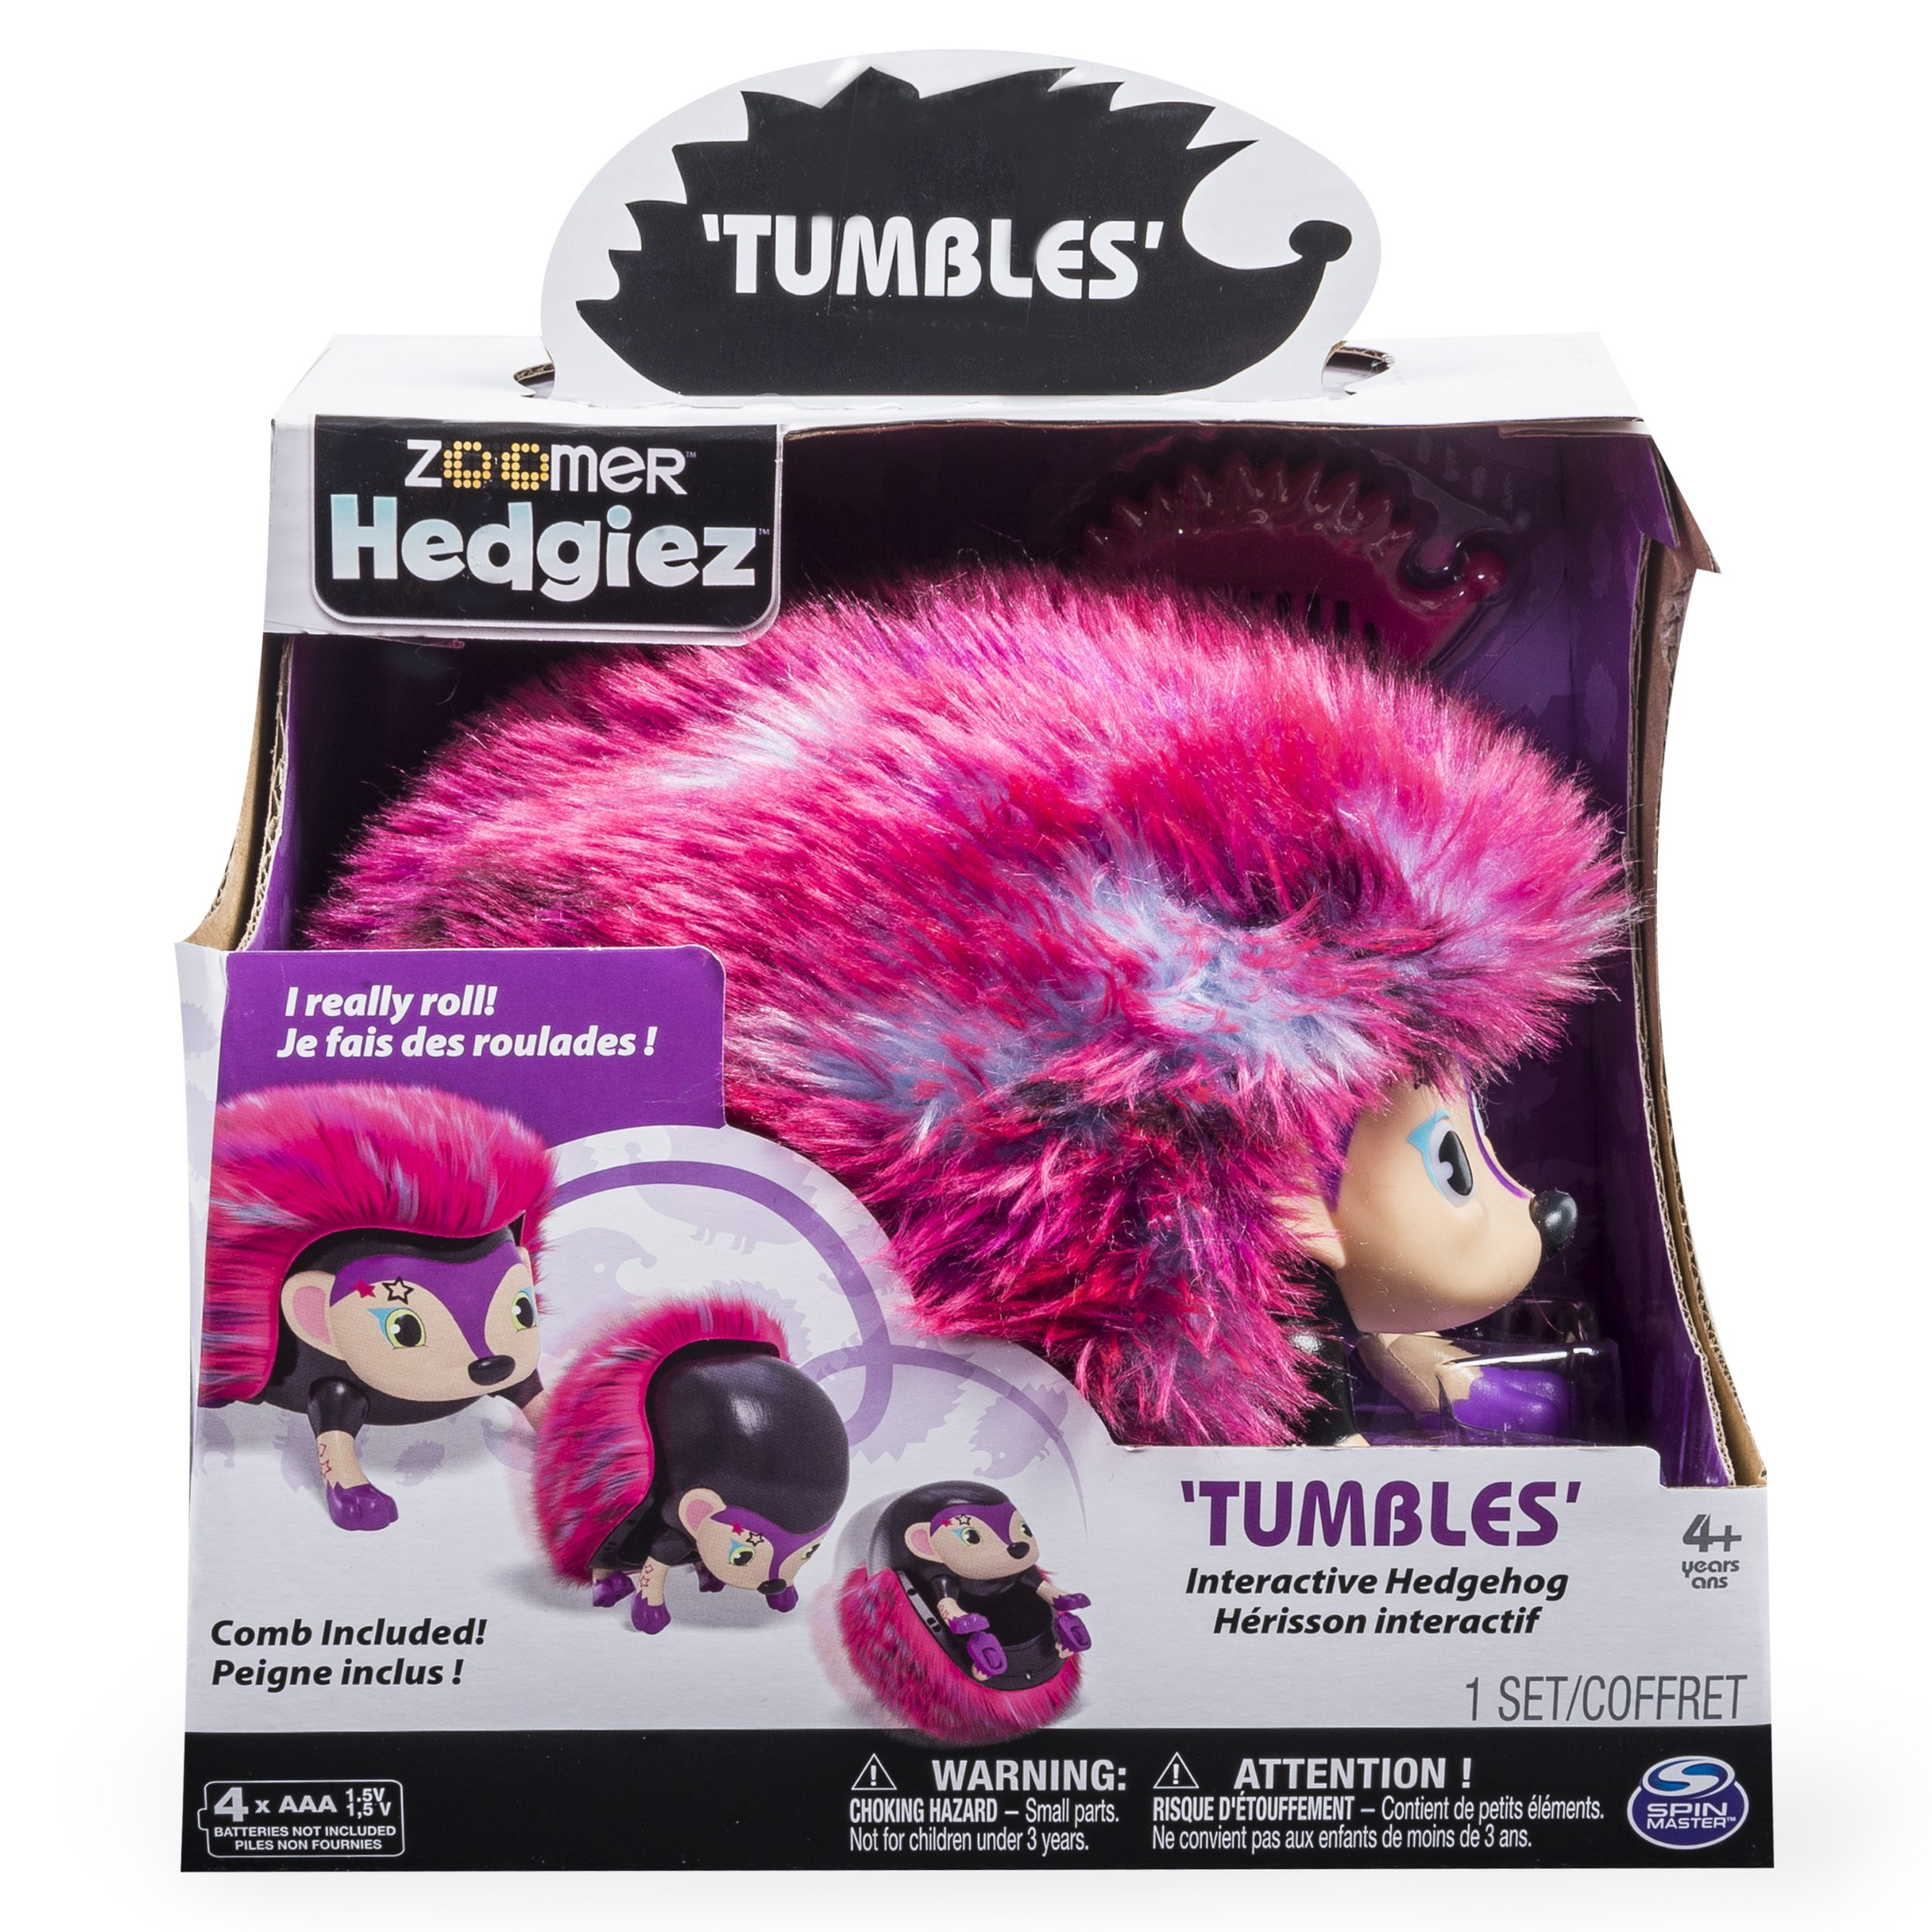 Zoomer Hedgiez,Tumbles, Interactive Hedgehog with Lights, Sounds and Sensors, by Spin Master by Zoomer (Image #4)